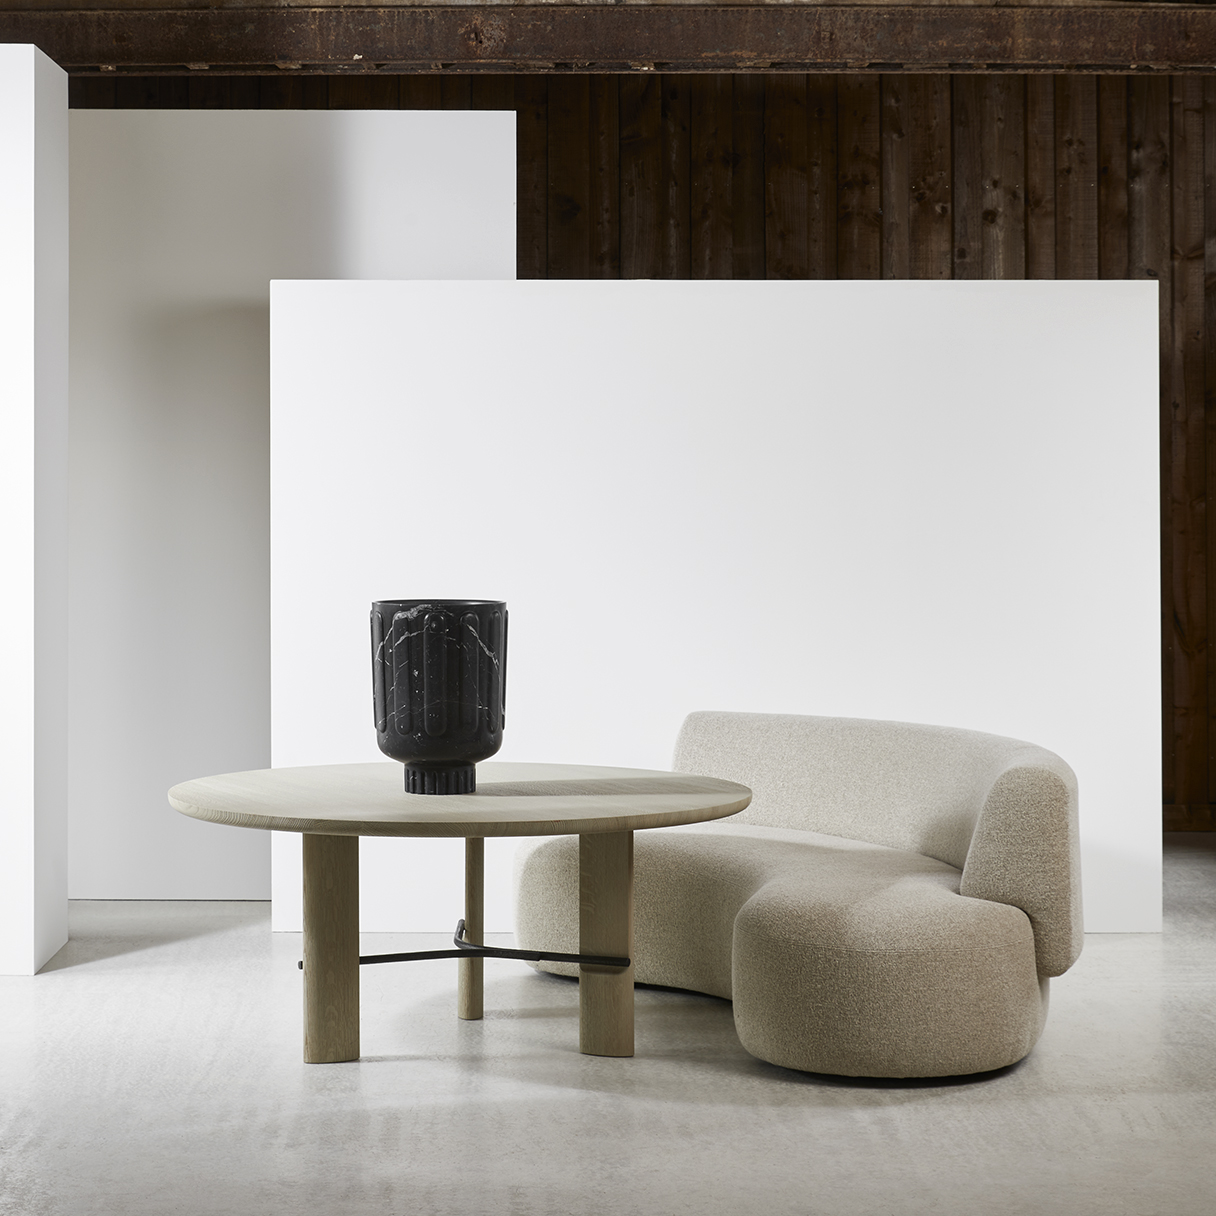 HUB_dining-table-LEK-sofa-Christophe-Delcourt-Collection-Particulière